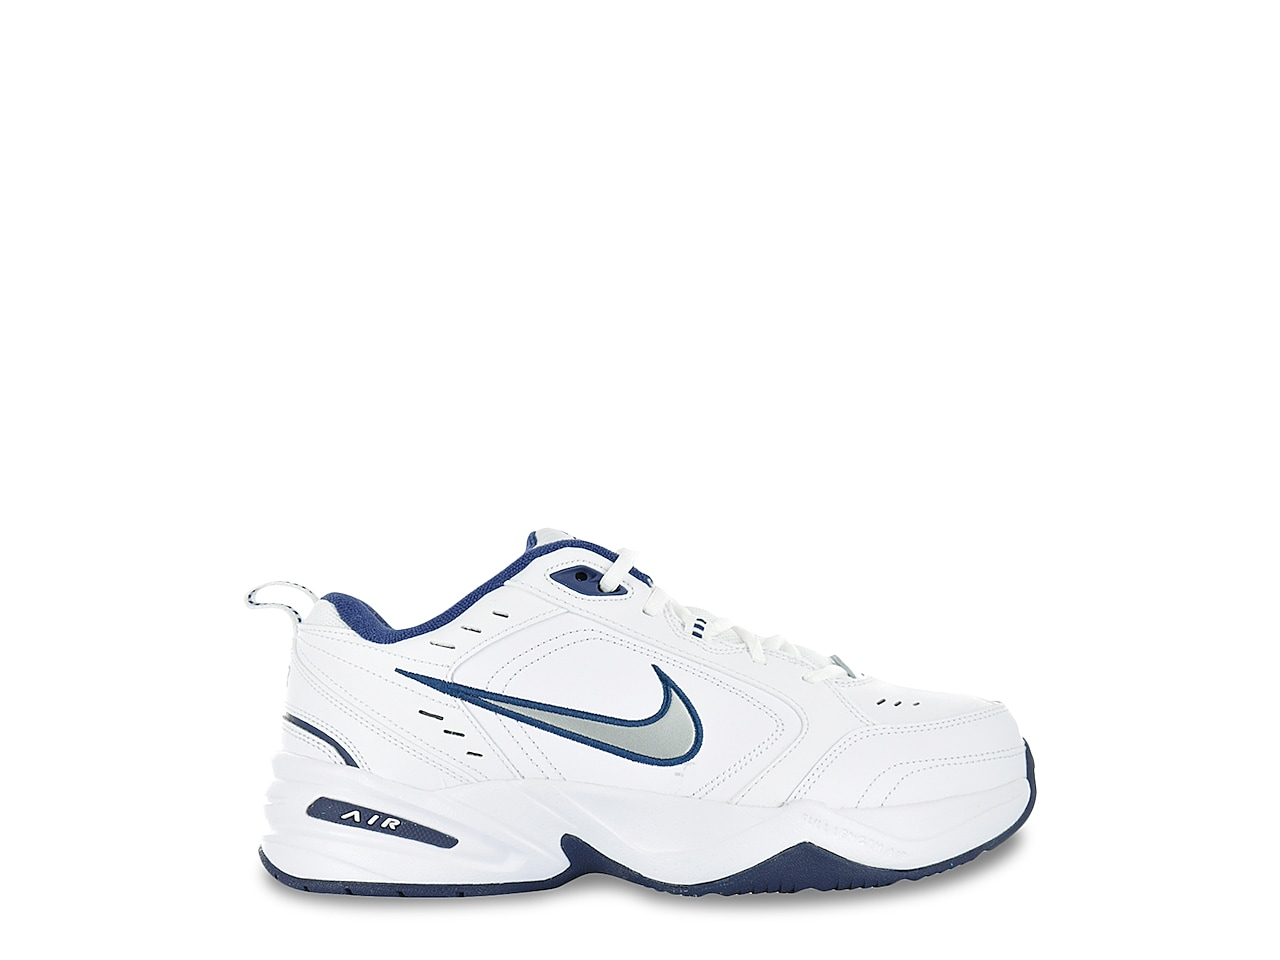 reputable site 3dd47 01fcc Toggle Image Magnification · Toggle Image Magnification · Toggle Image  Magnification · Toggle Image Magnification. Prev  Next. Nike. Air Monarch  IV Trainer